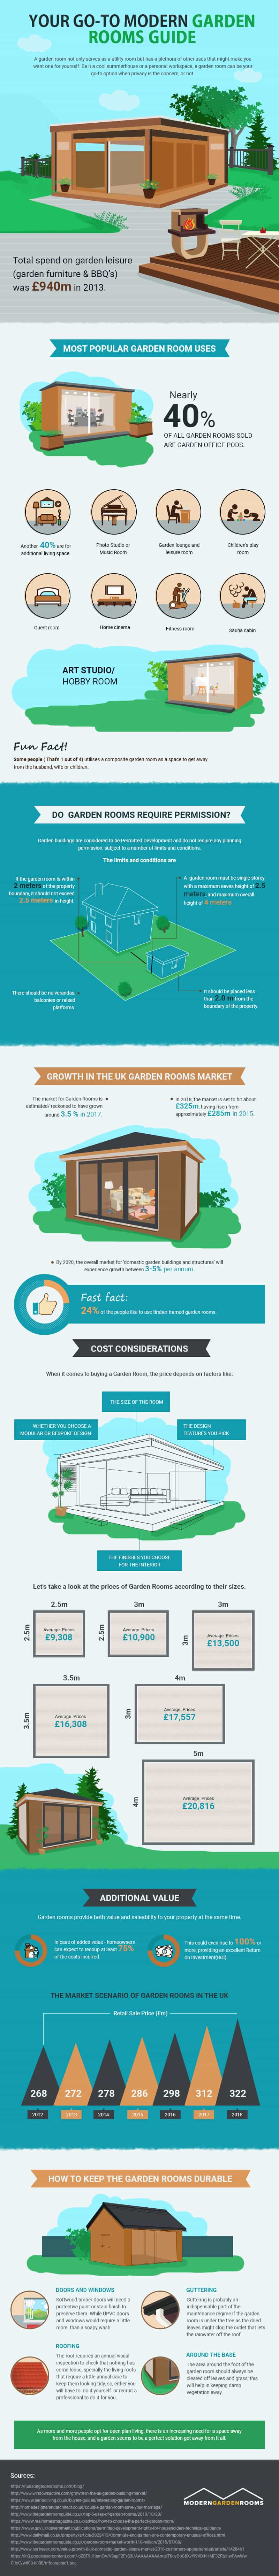 modern garden rooms infographic